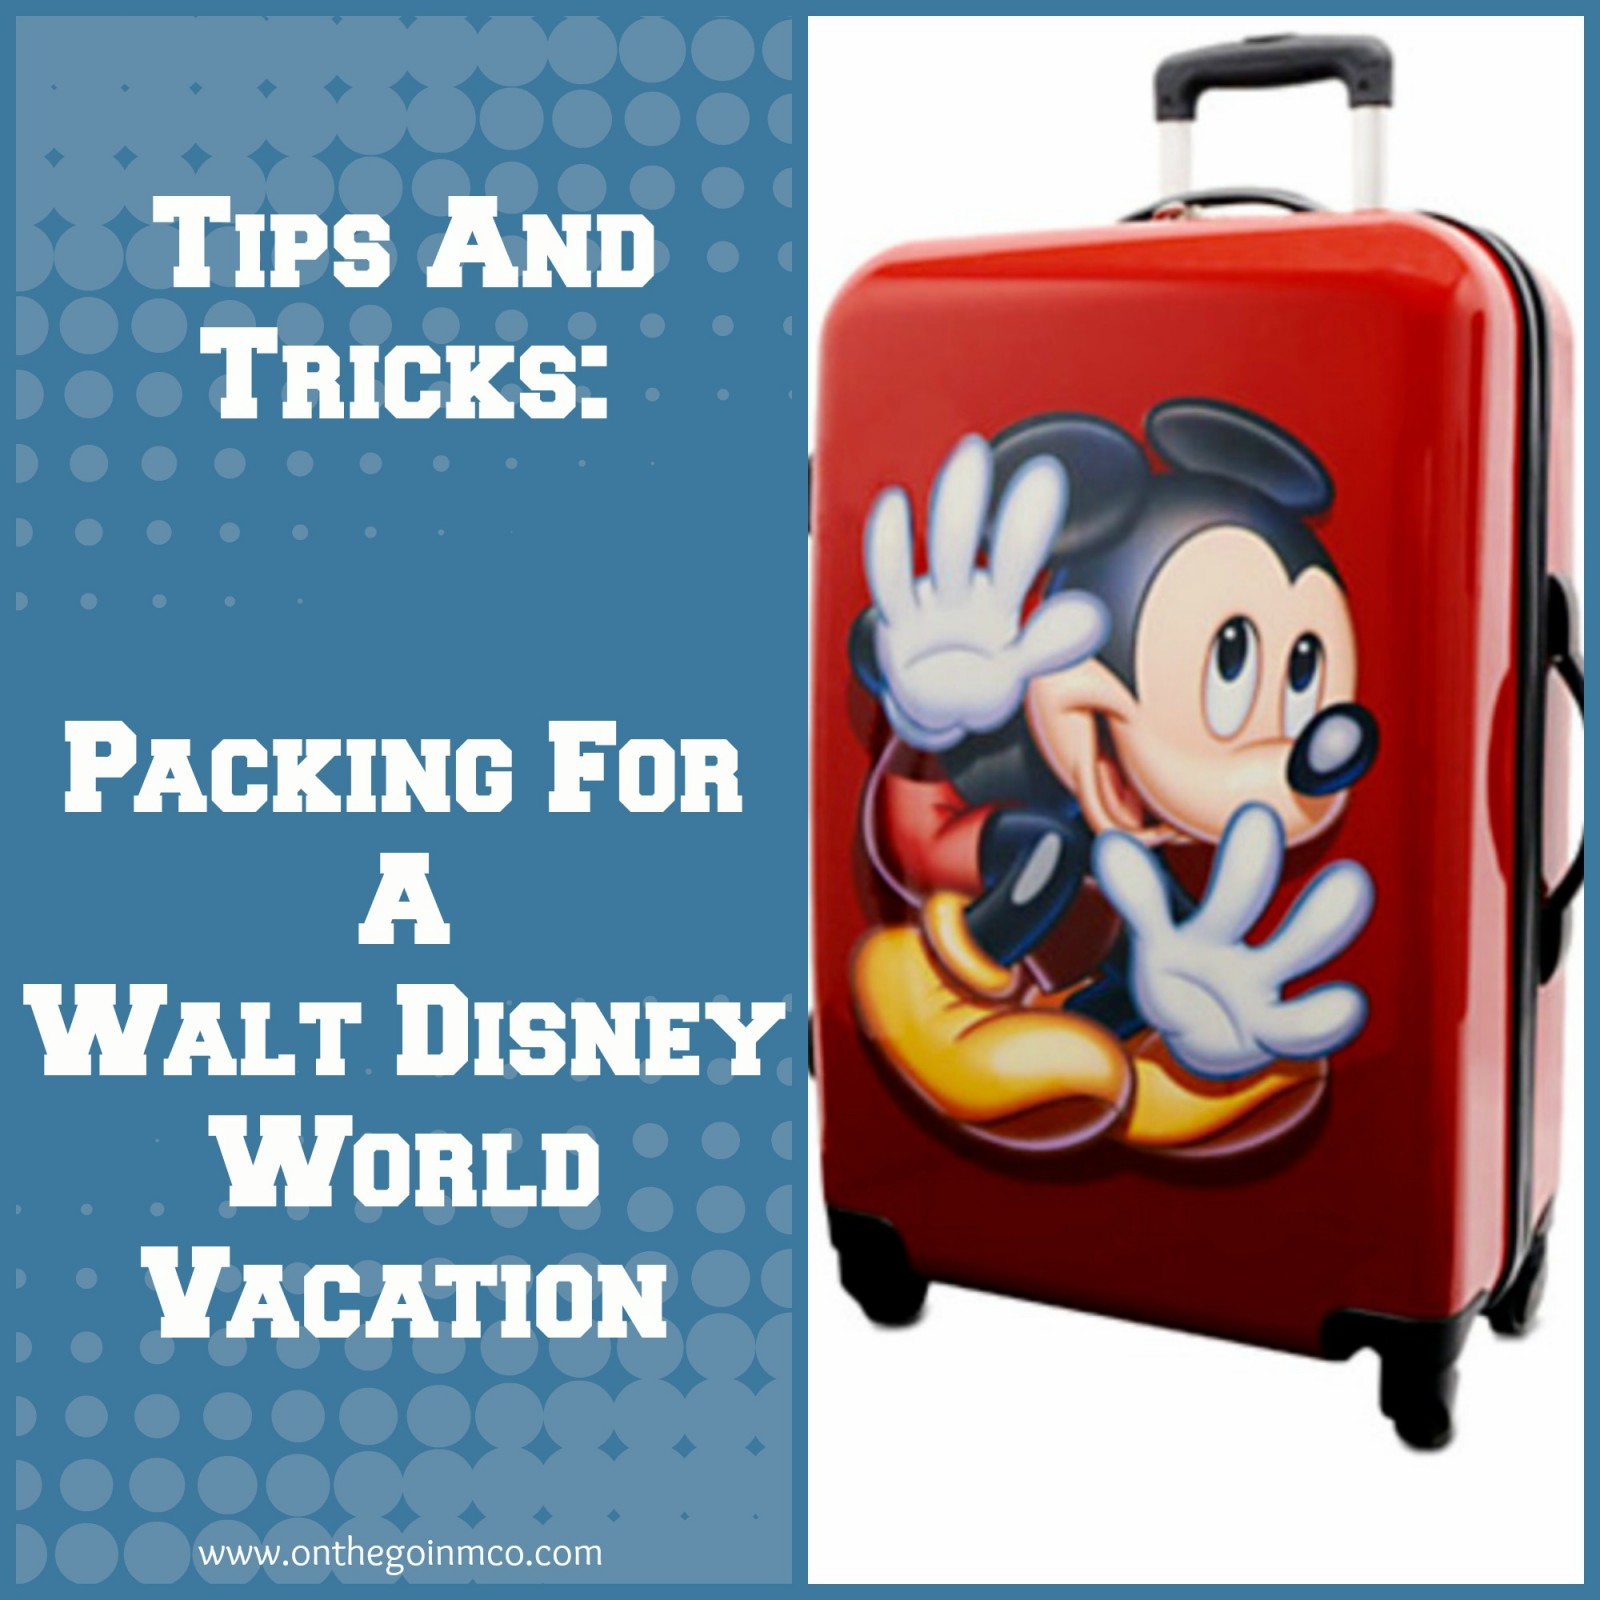 Tips And Tricks: Packing For A Walt Disney World Vacation